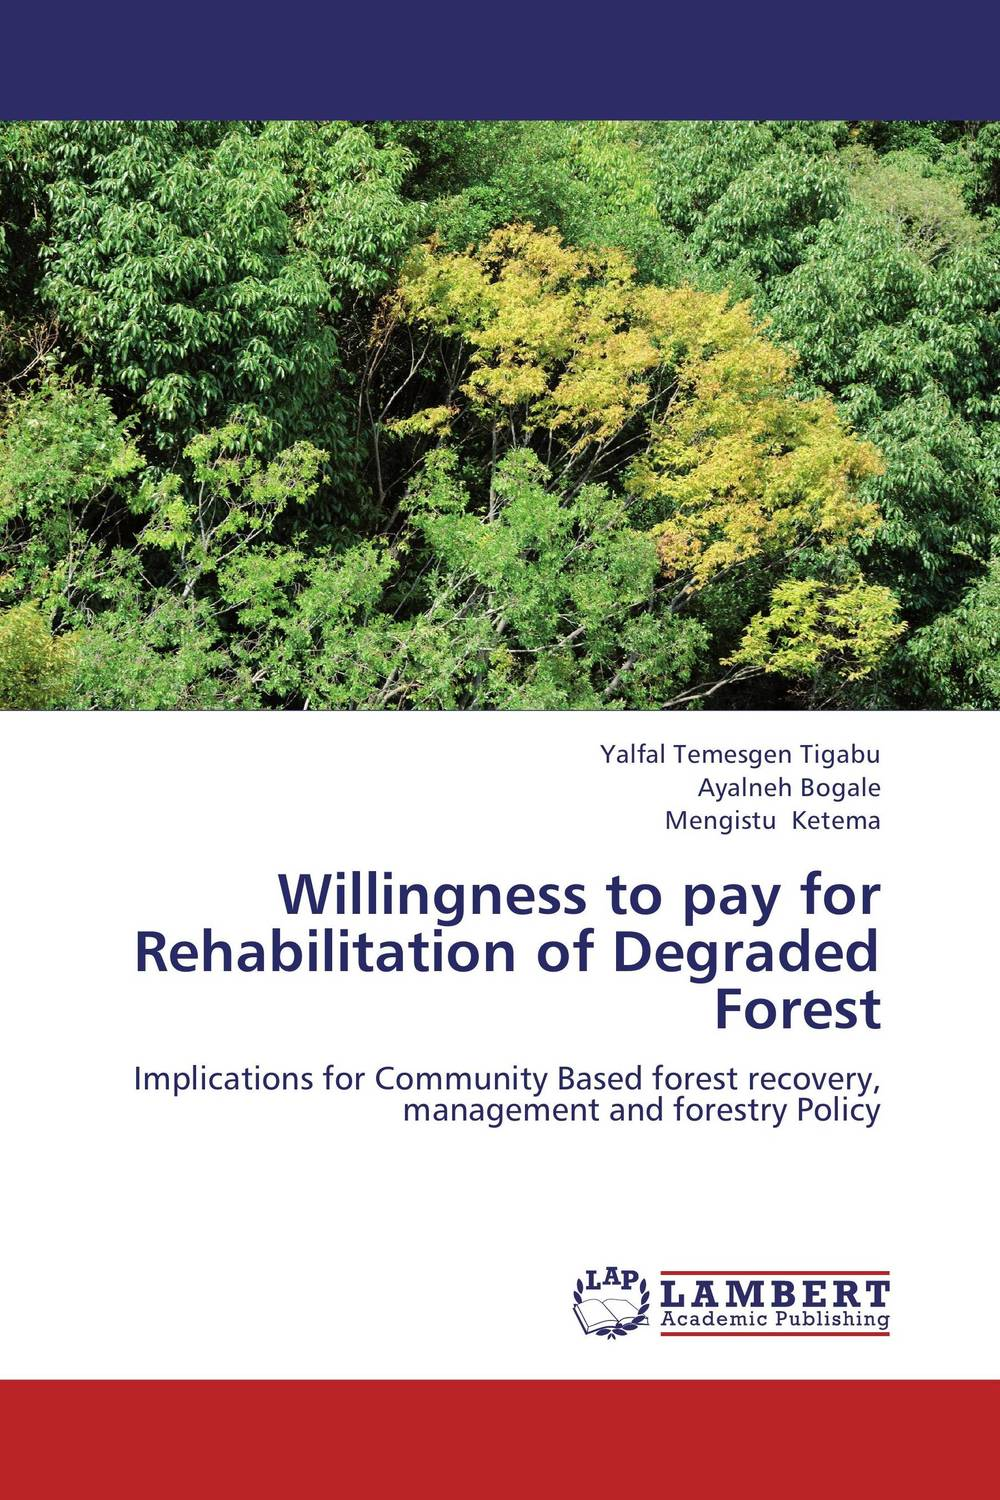 Willingness to pay for Rehabilitation of Degraded Forest